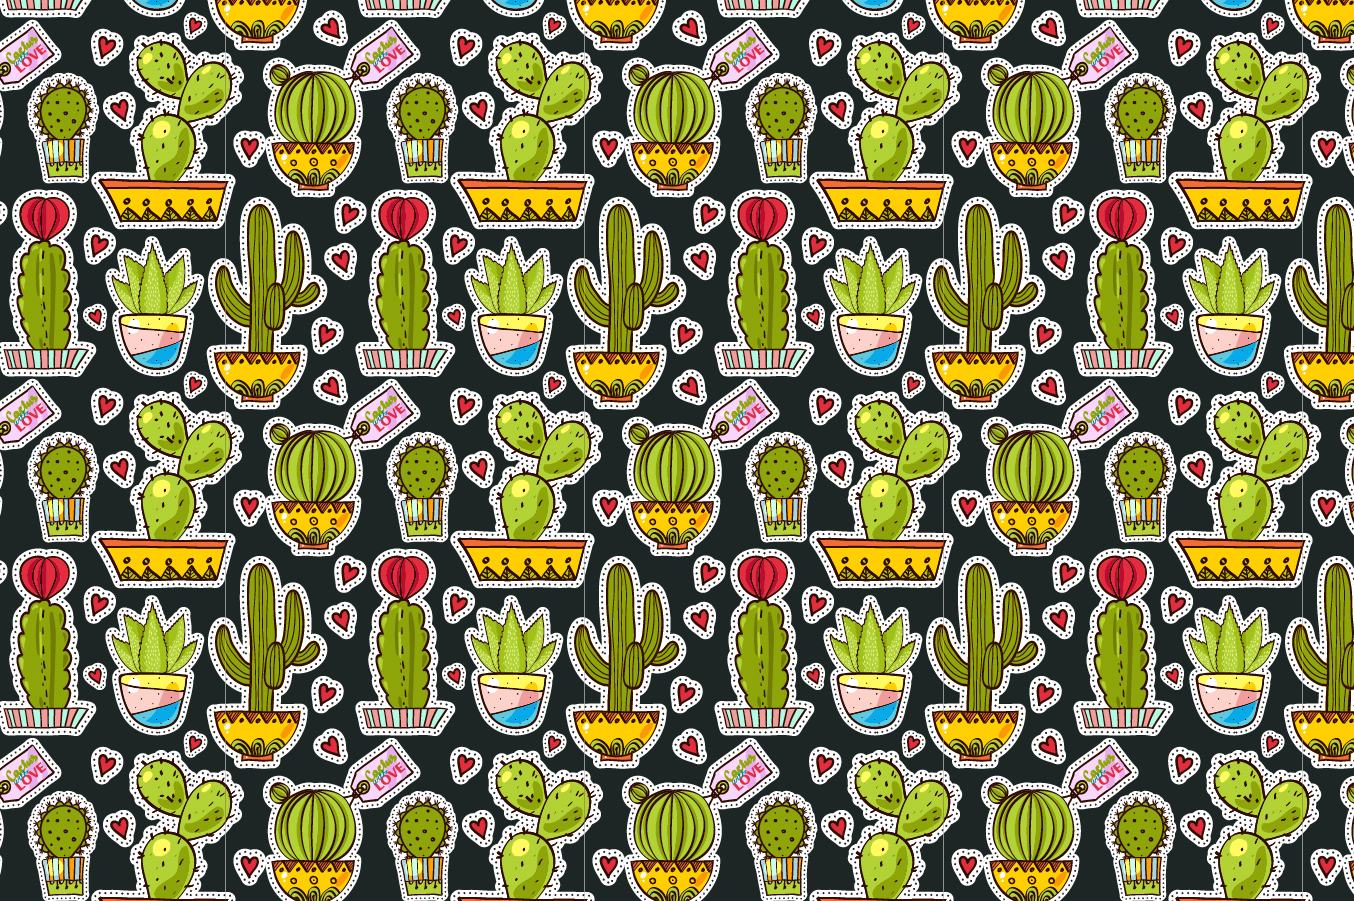 Set Fashion patches with cacti example image 2